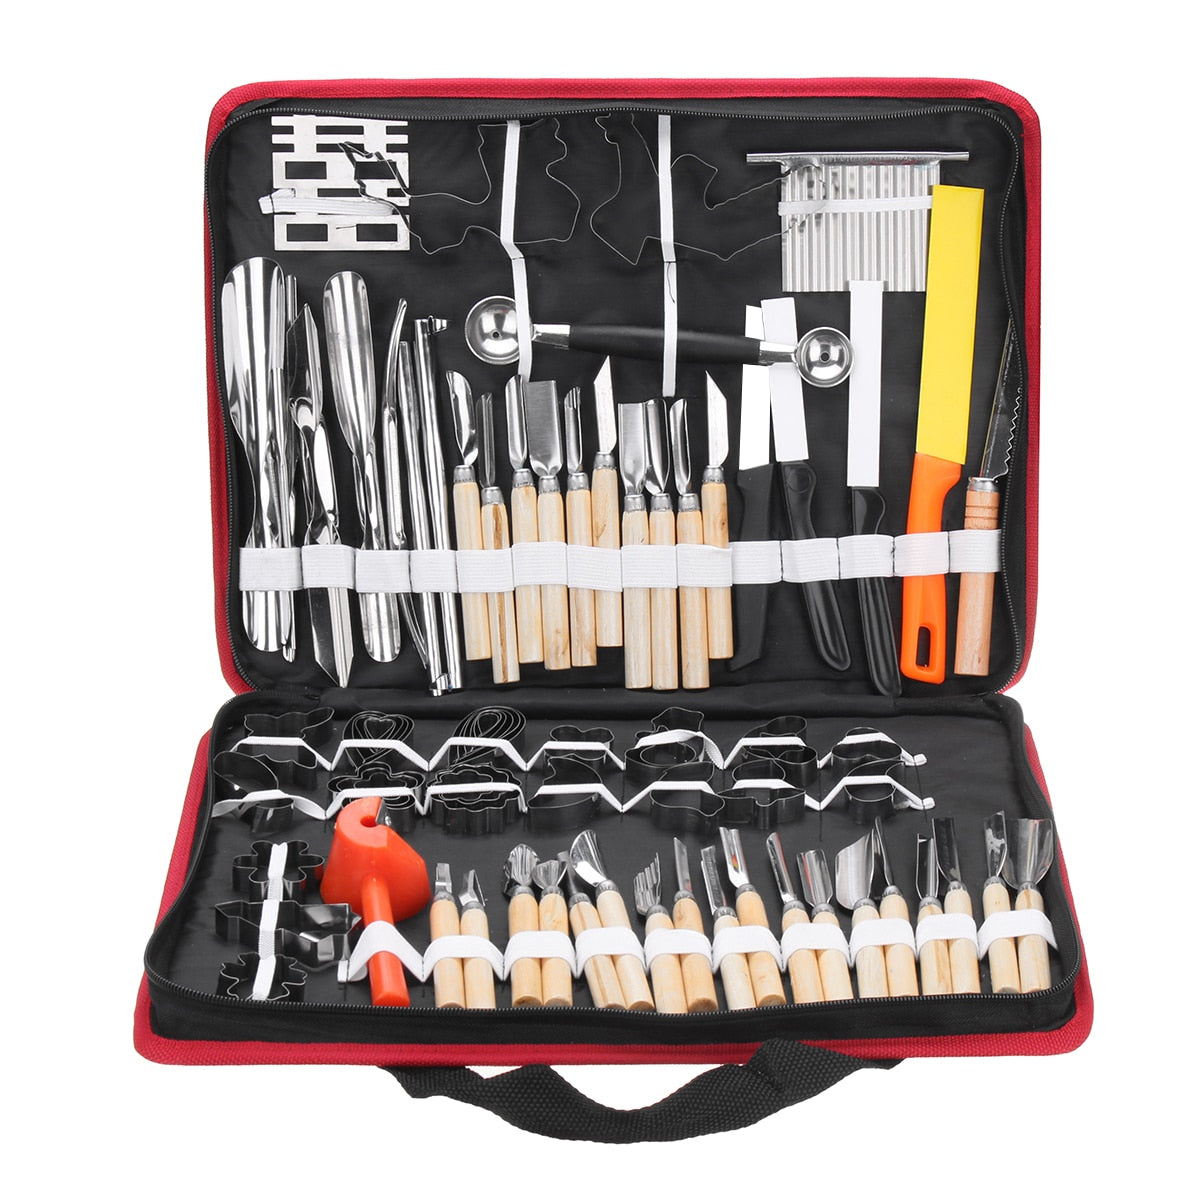 80PCS/Set Kitchen Carving Tool Kit Set with Portable Storage Bag Bakeware Vegetables Food Fruits Cooking Decorating Tools Gadget